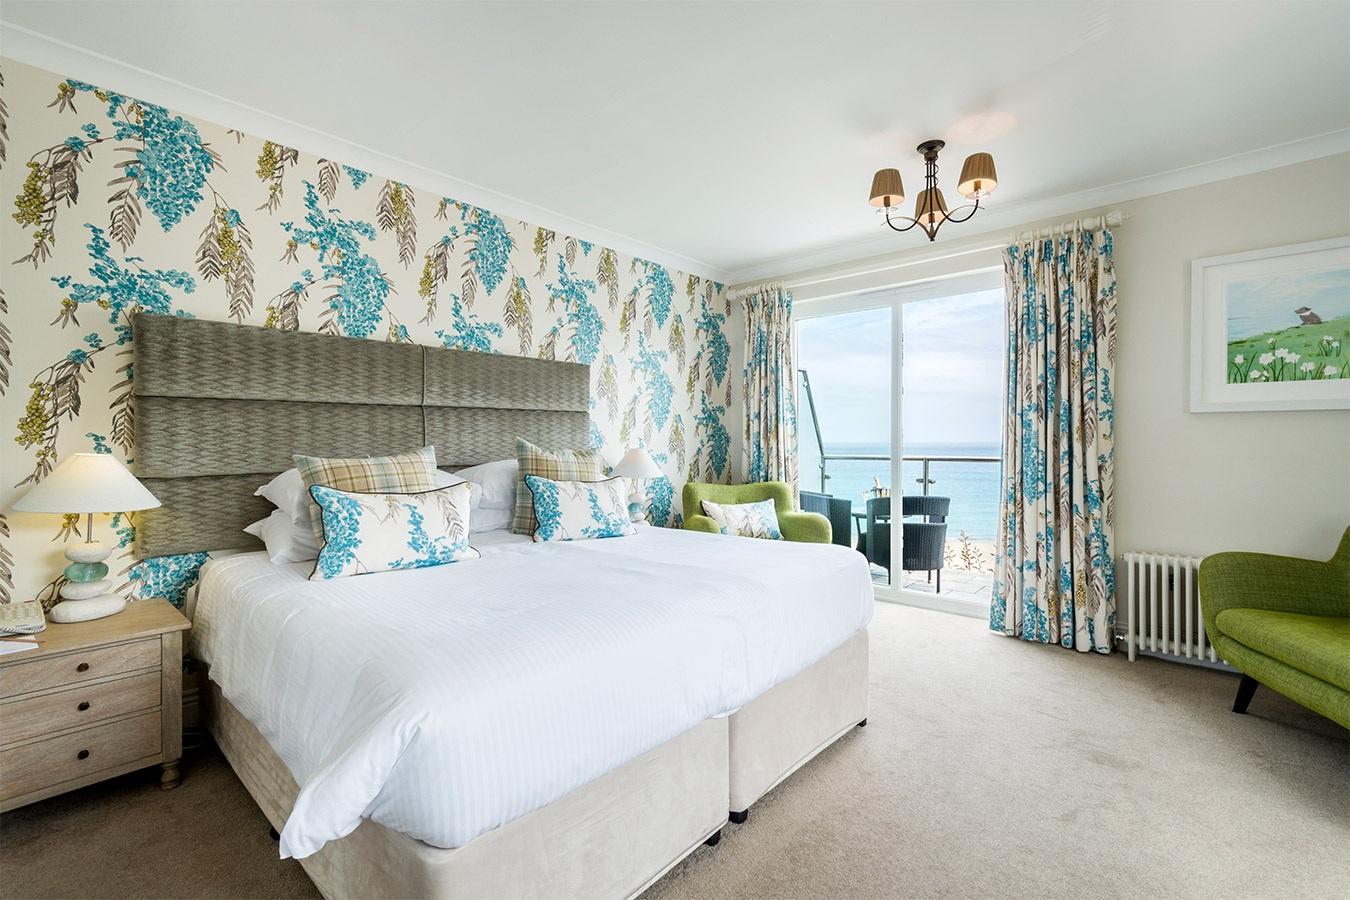 Cream and blue themed bedroom overlooking Carbis Bay.